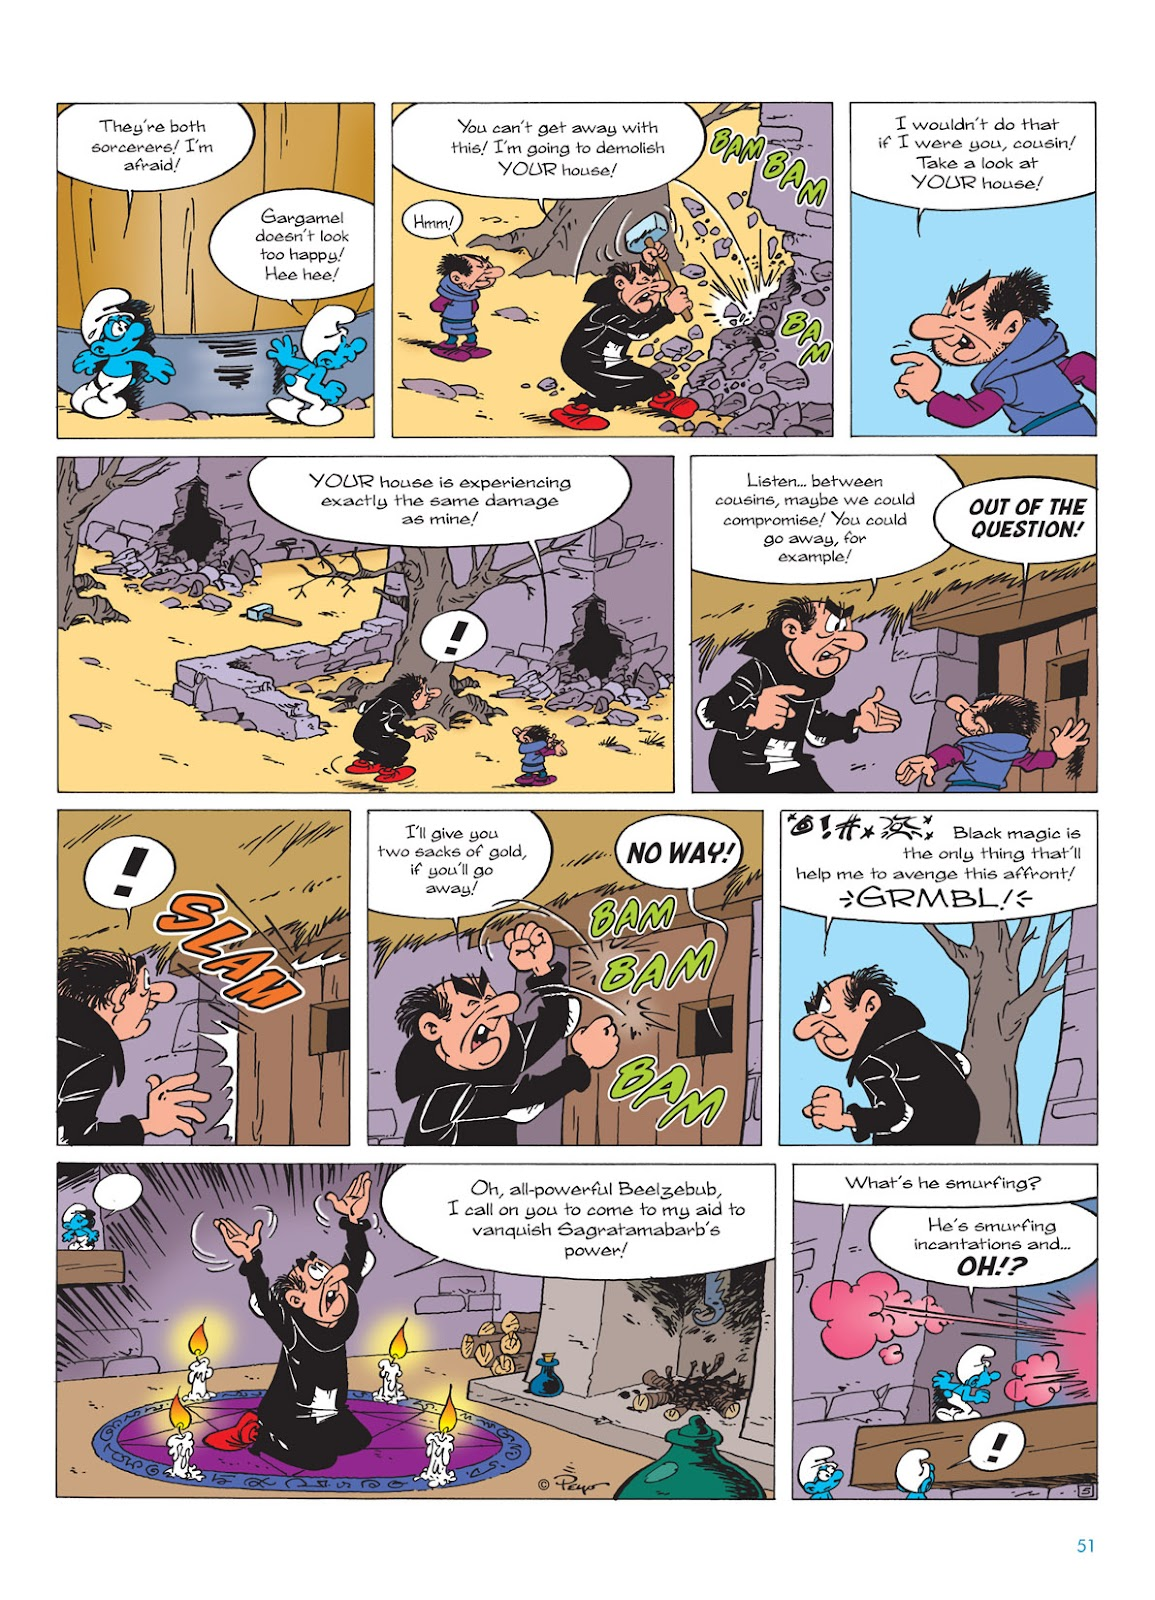 Read online The Smurfs comic -  Issue #9 - 51